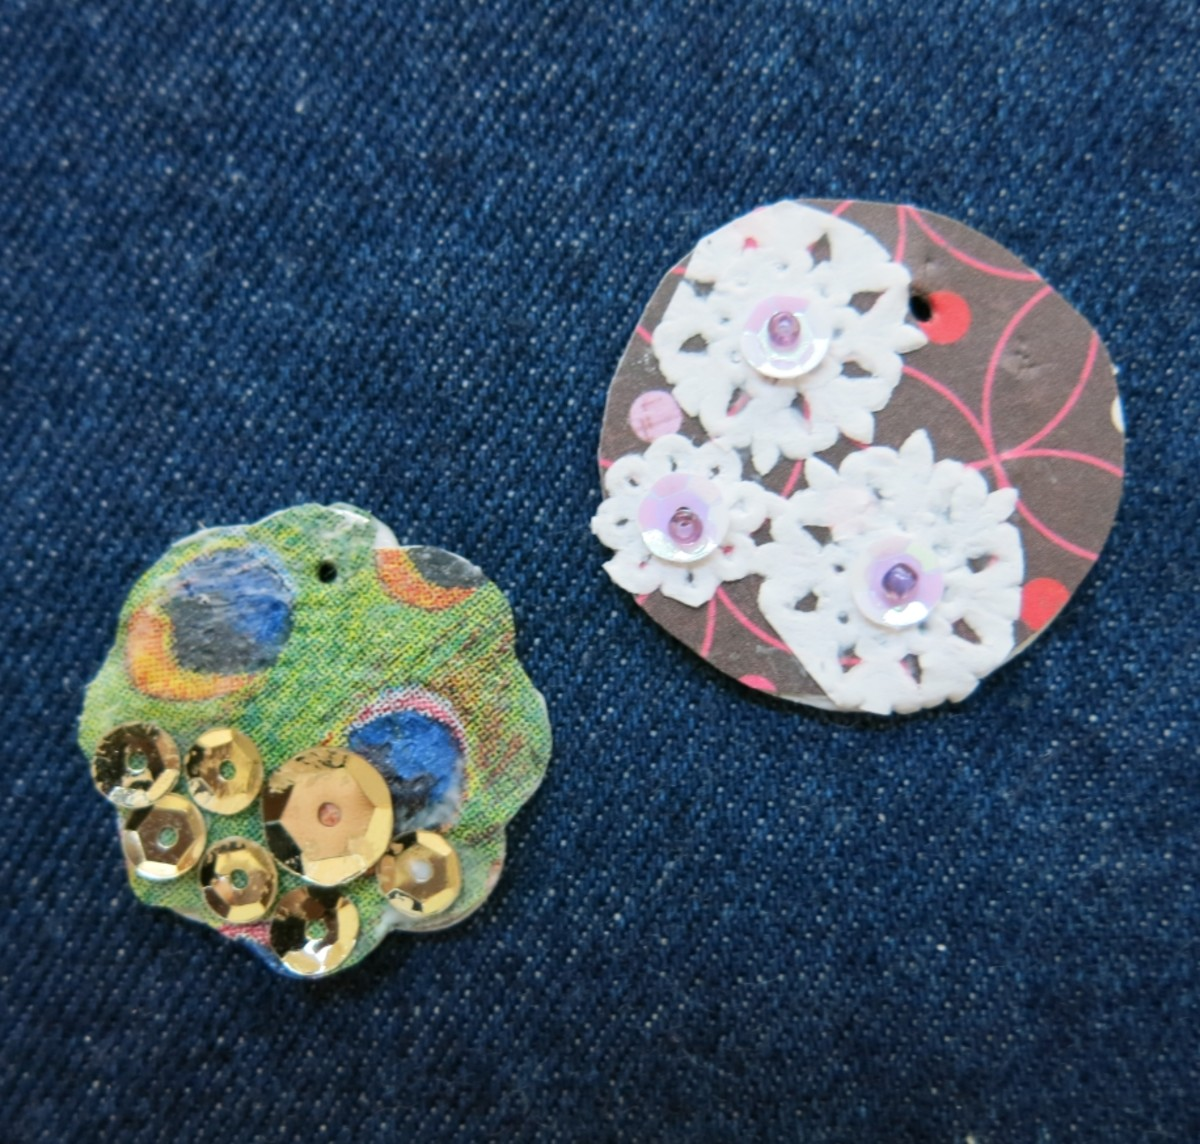 Use wrapping paper, stickers, postage stamps, paper doilies, buttons, and sequin to decorate your charms